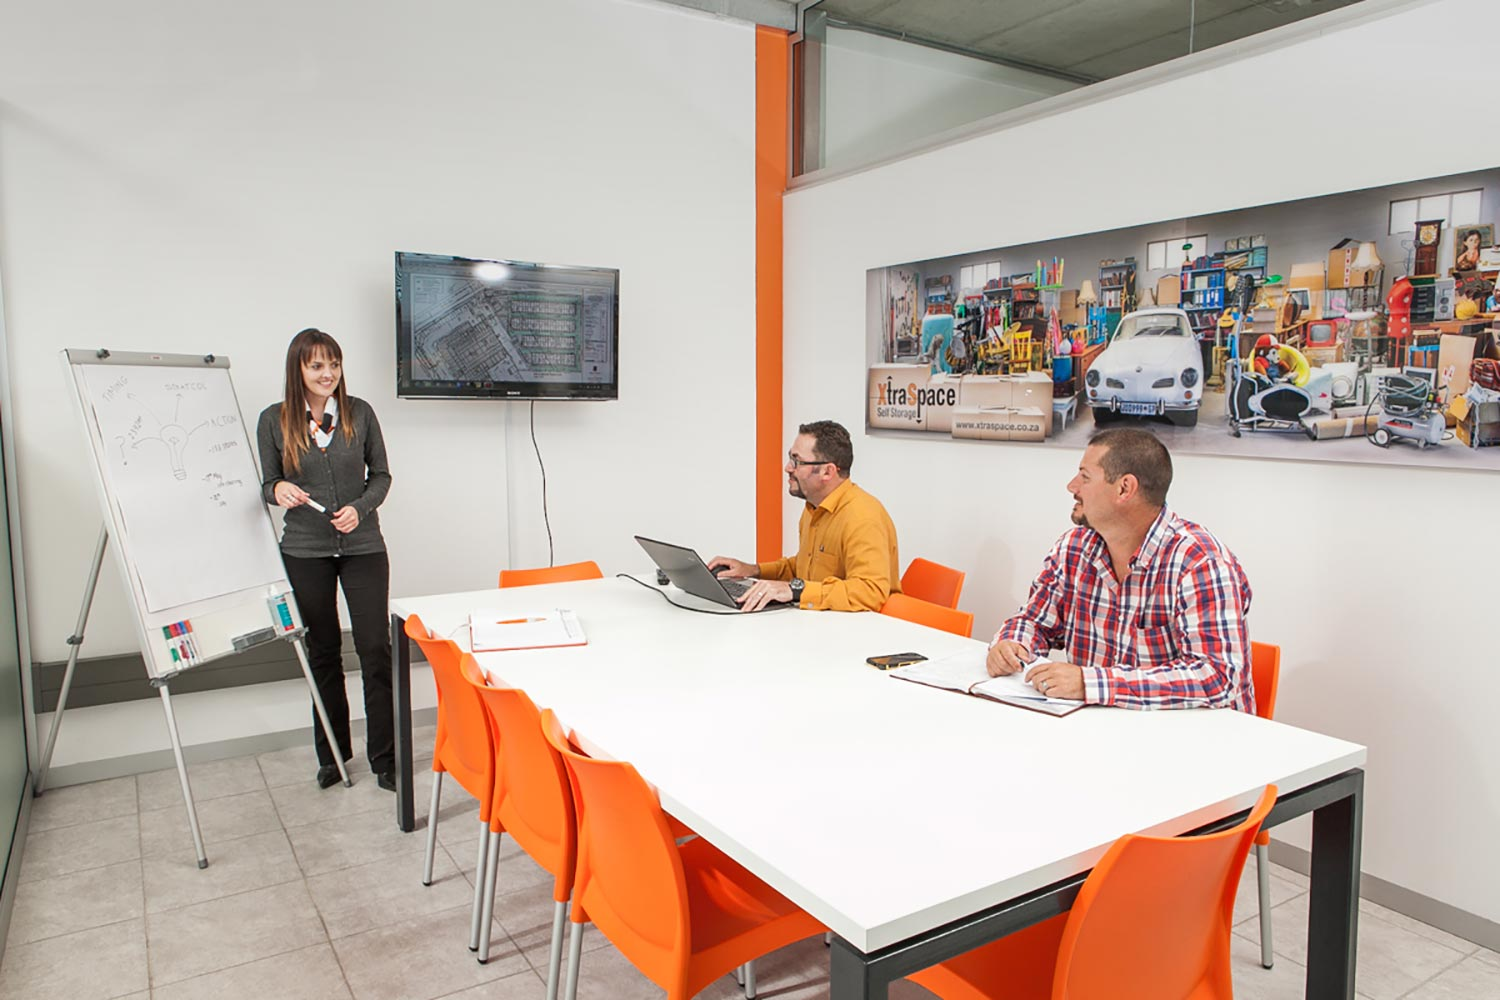 A lady presenting something to two men with the help of a whiteboard and flat screen TV inside a modern meeting room.